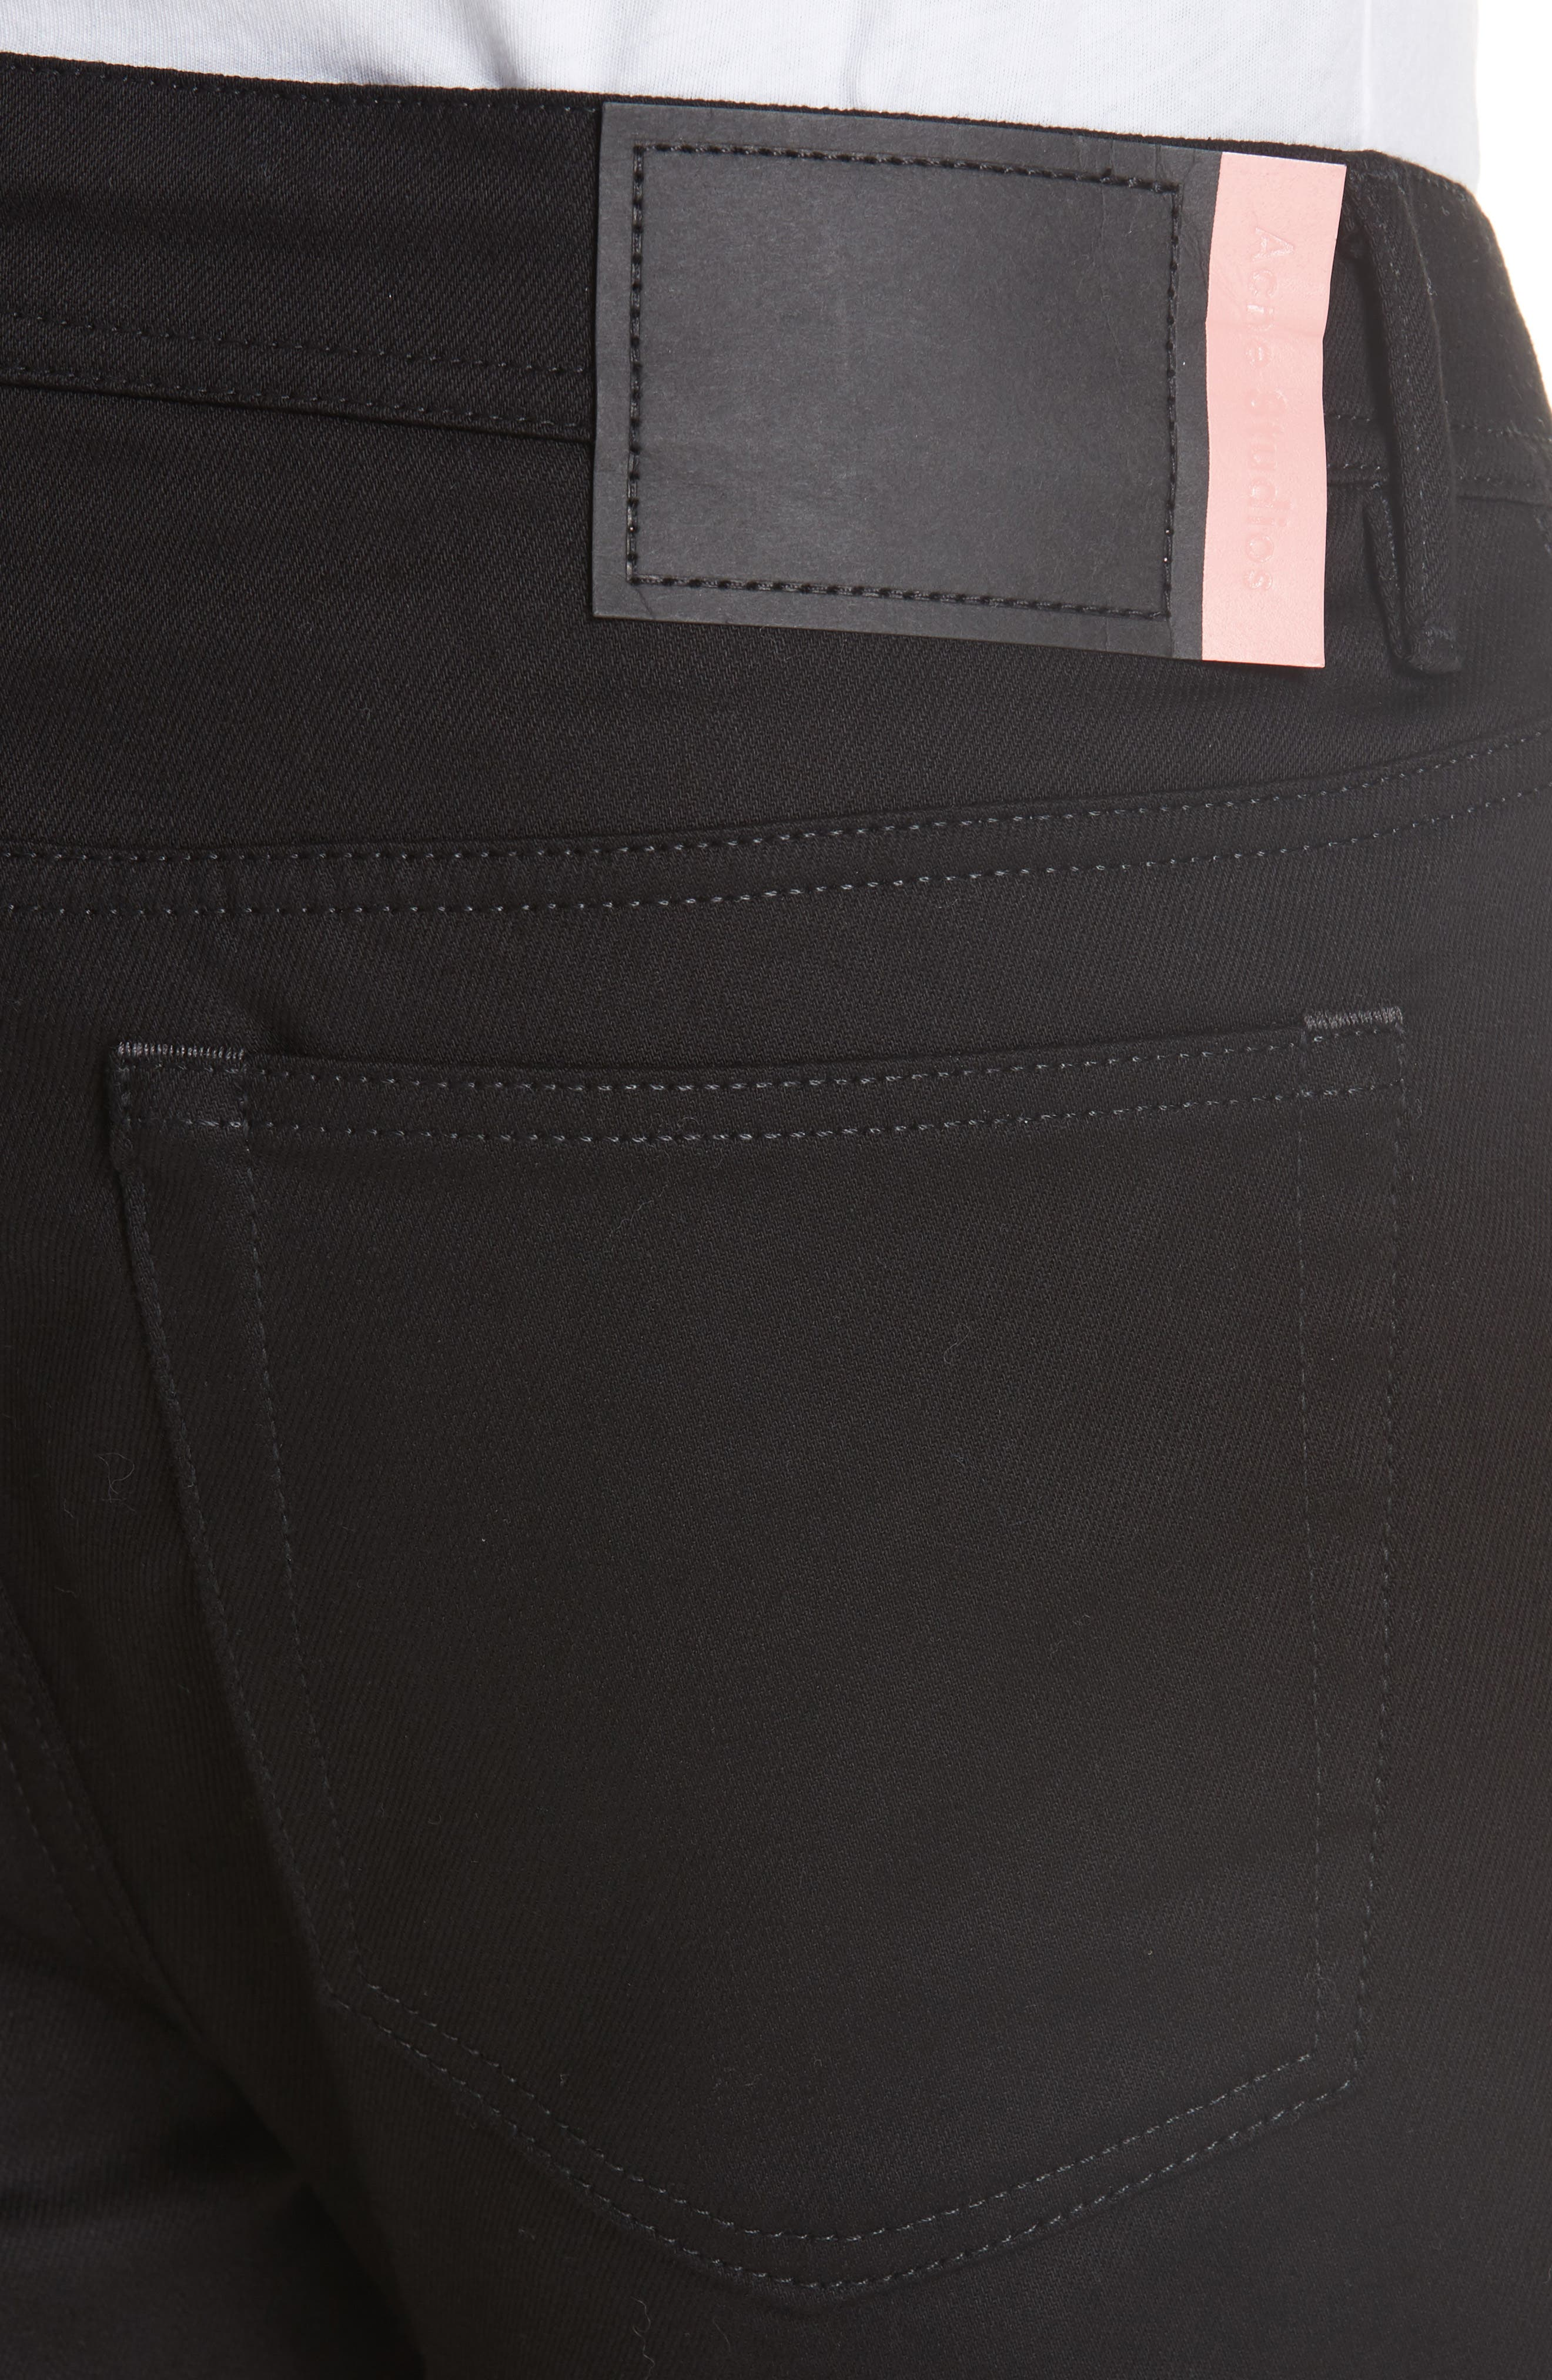 North Stay Slim Fit Jeans,                             Alternate thumbnail 4, color,                             NORTH STAY BLACK